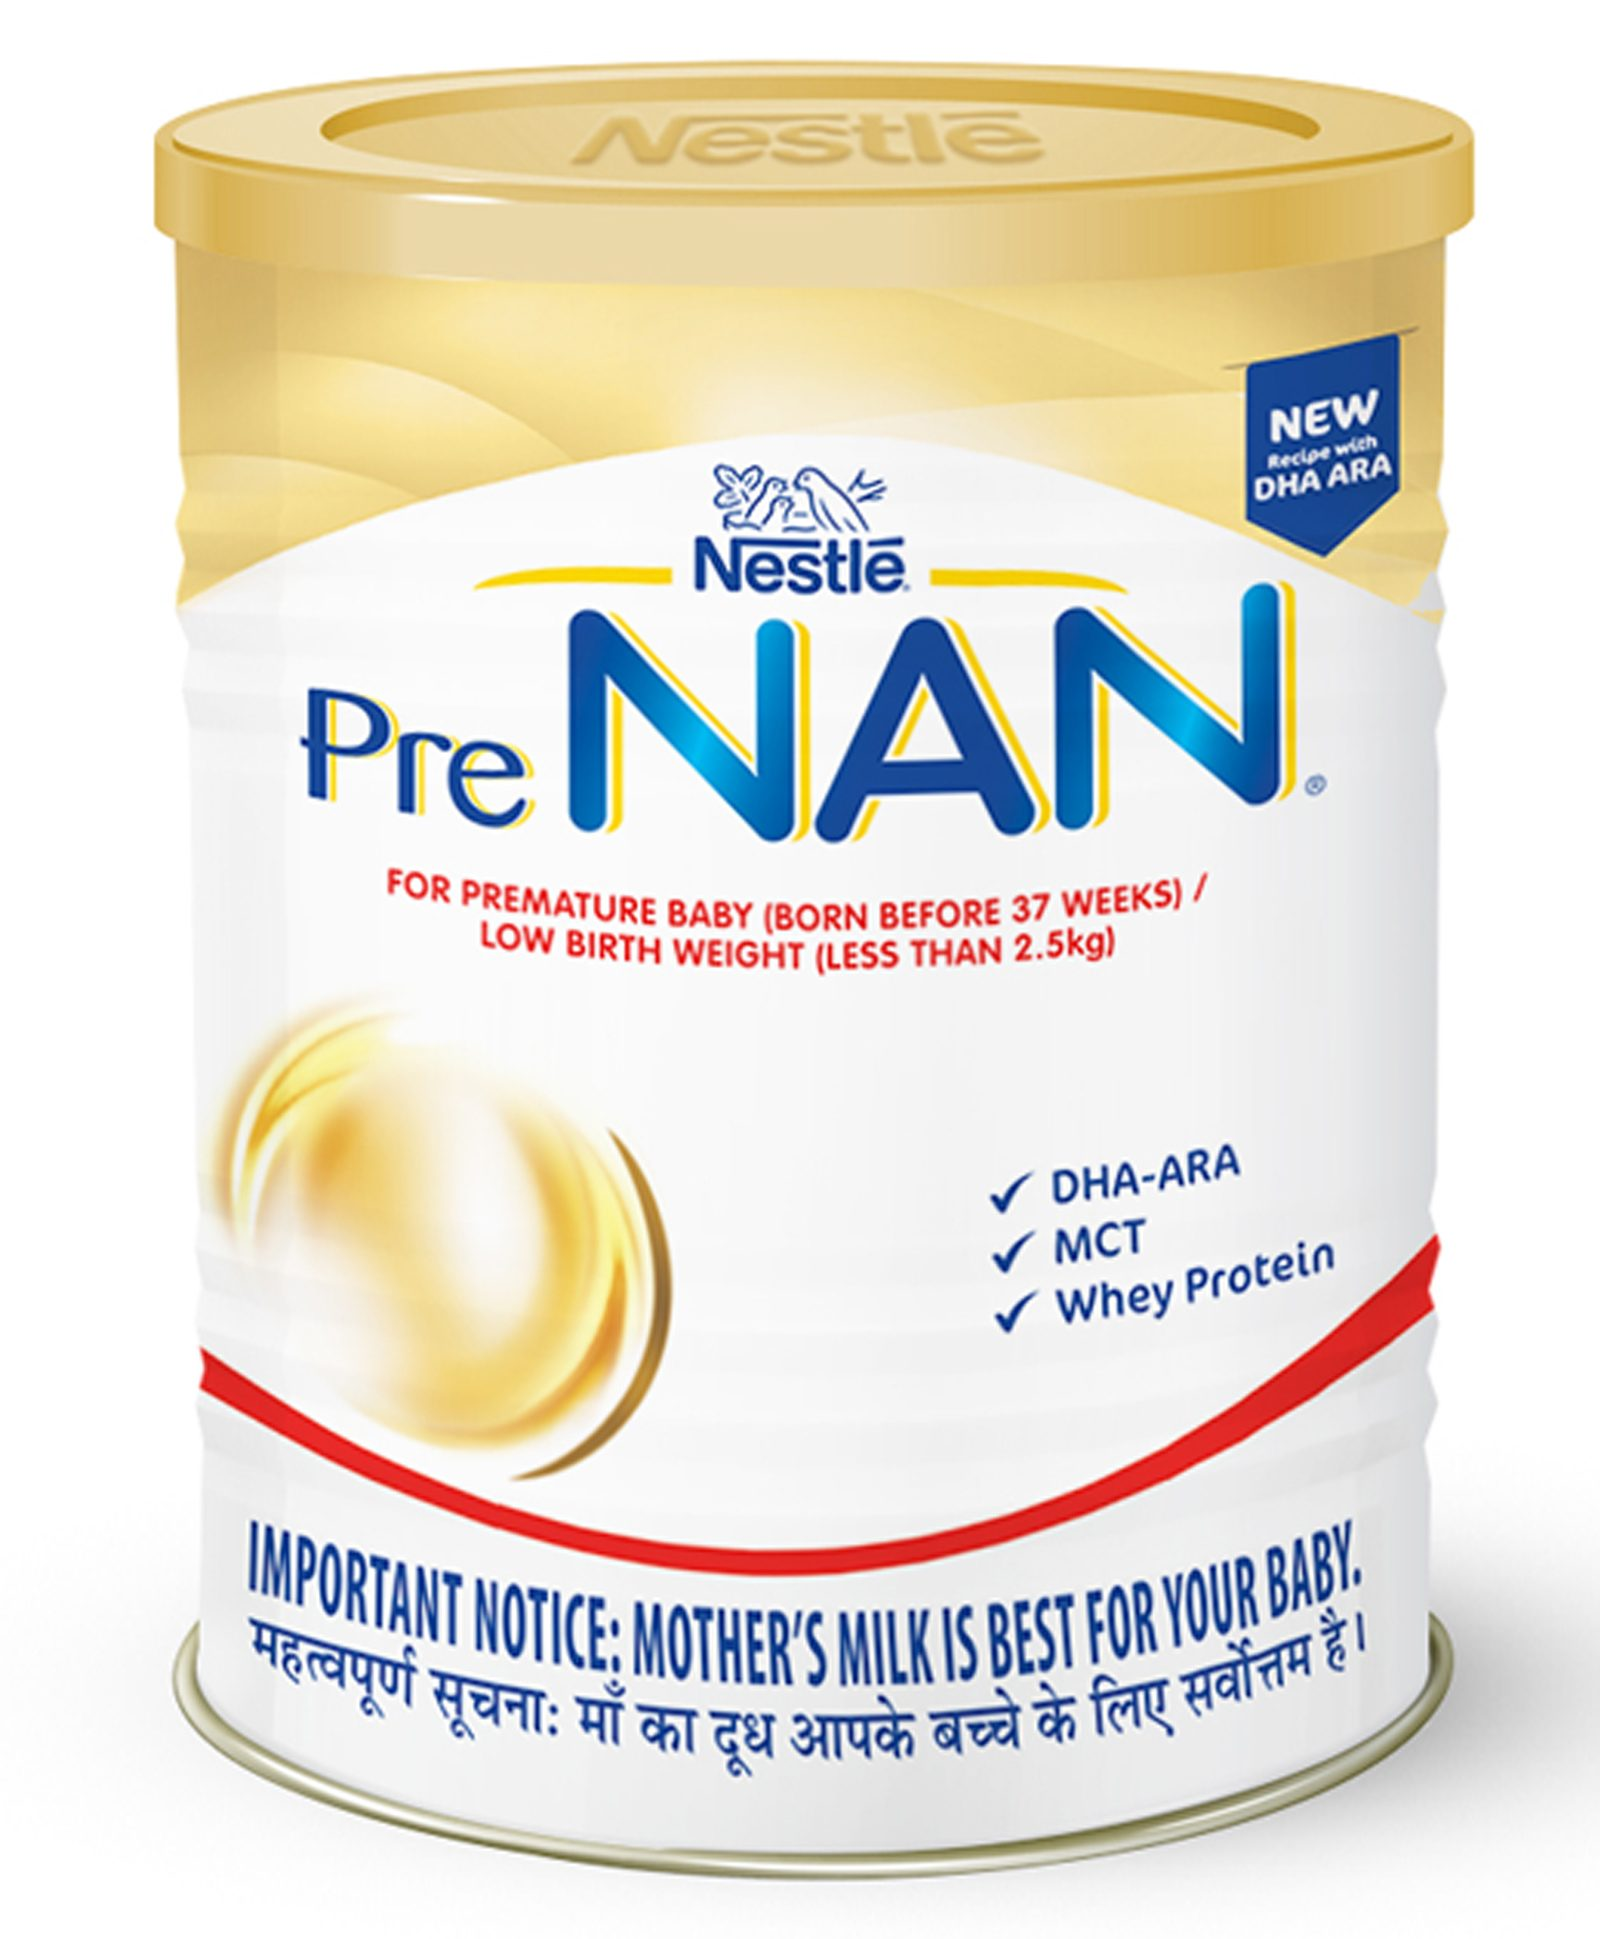 PRE NAN Low Birth Weight Infant Milk Formula 400g Refill pack